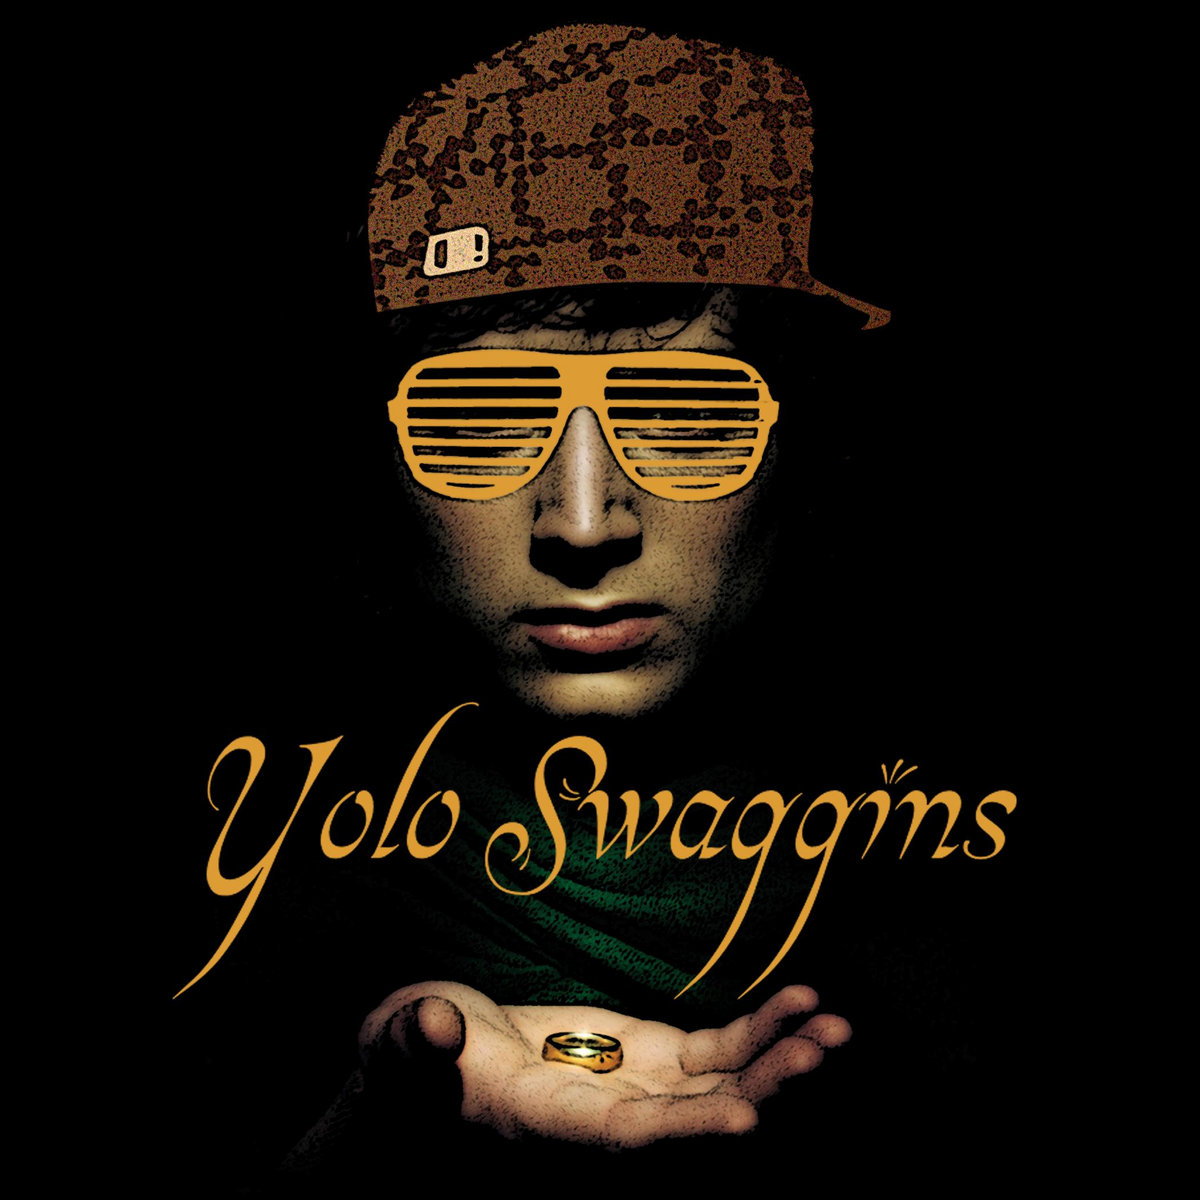 Brodo Swaggins And The Fellowship Of The Bling Yolo Swaggins - ESPN